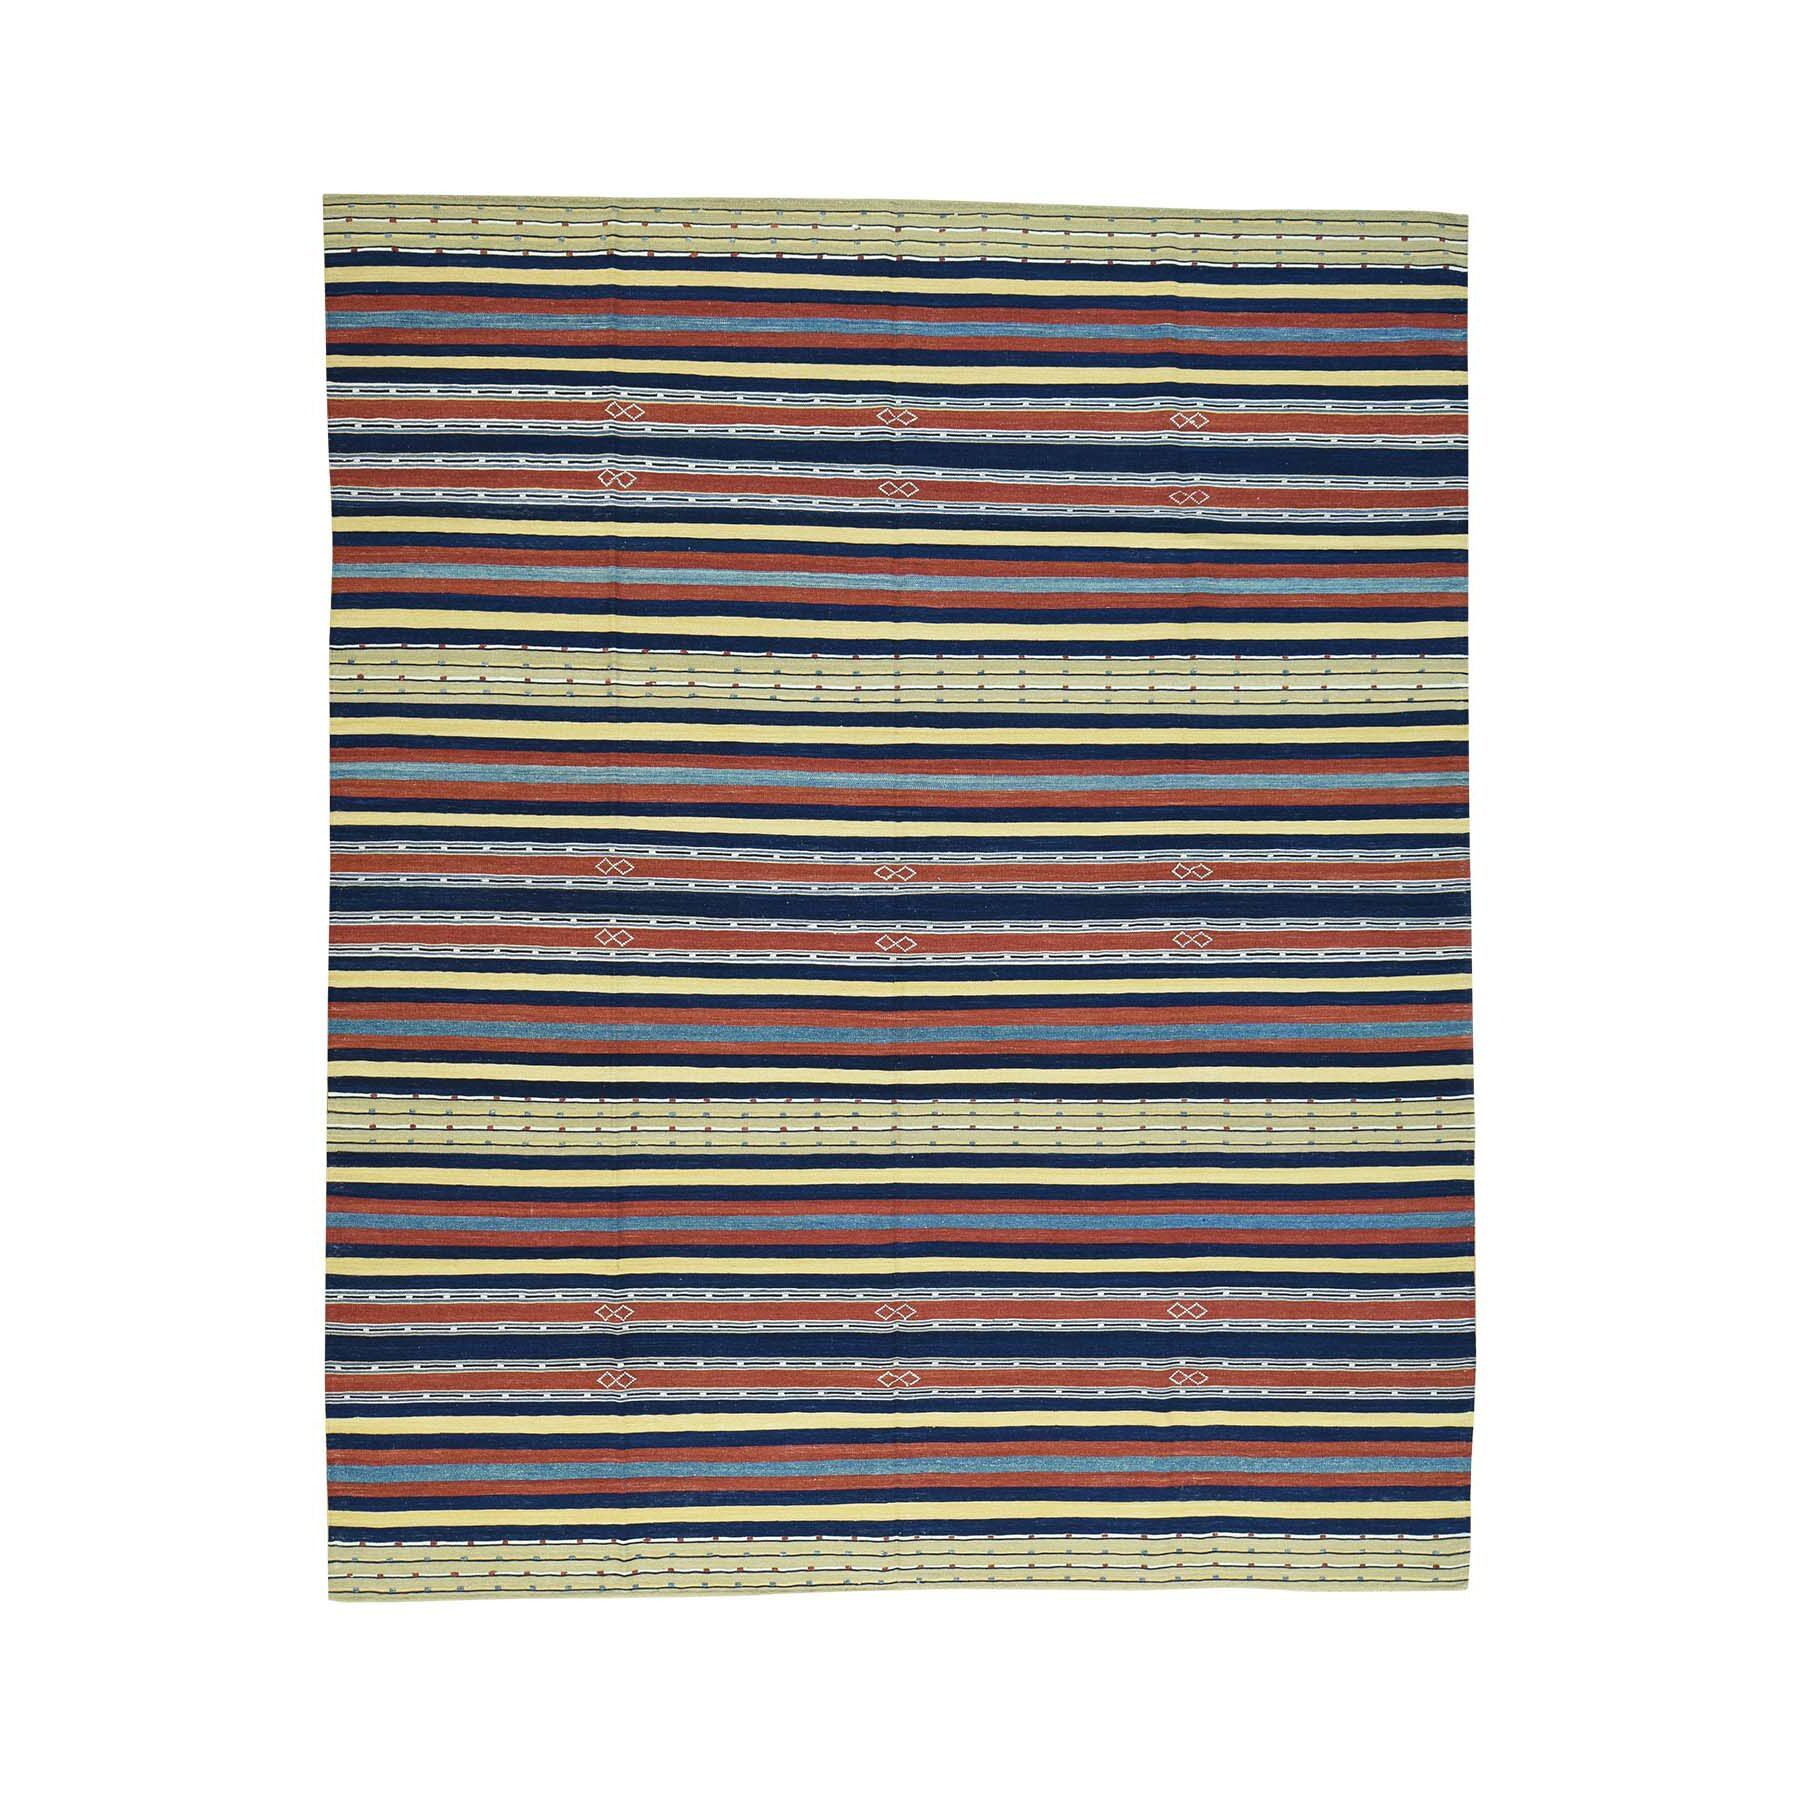 One-of-a-Kind Alpsville Qashqai Kilim Striped Flat Weave Oriental Hand-Knotted Red/Blue Area Rug